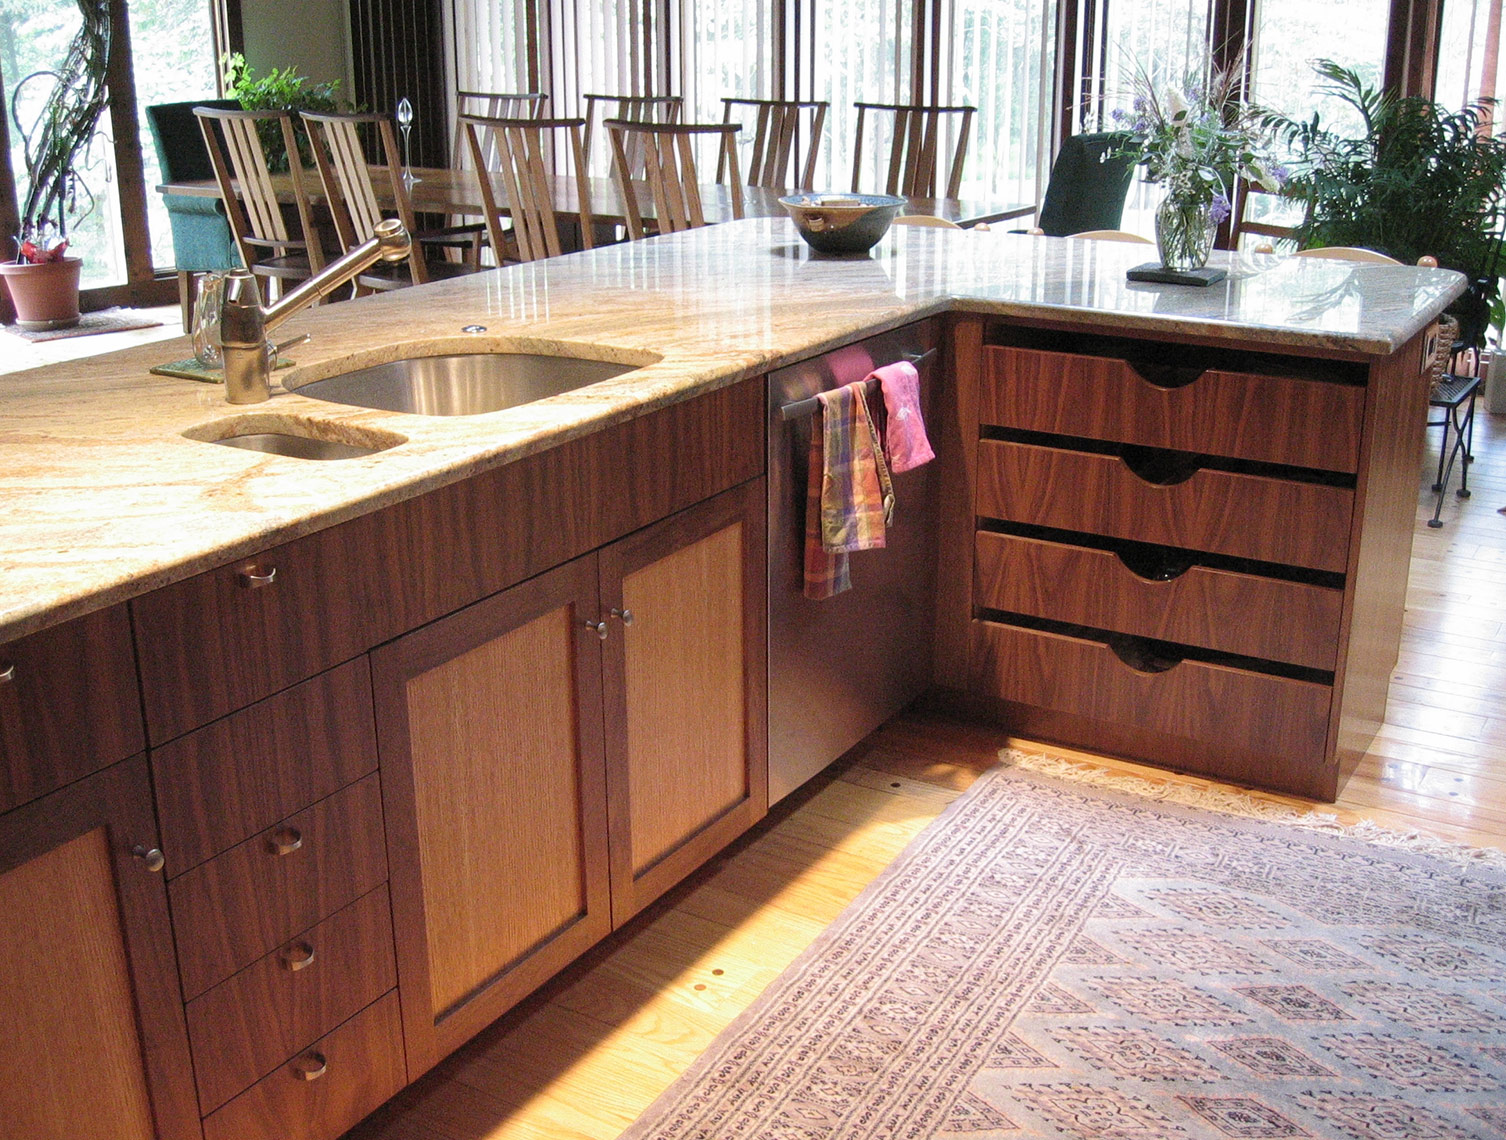 custom kitchen cabinets- mercer county, nj-by birdie miller-Contemporary-Open-Design-Kitchen,-Walnut-and-Quartered-Red-Oak,-Granite-Counters-6